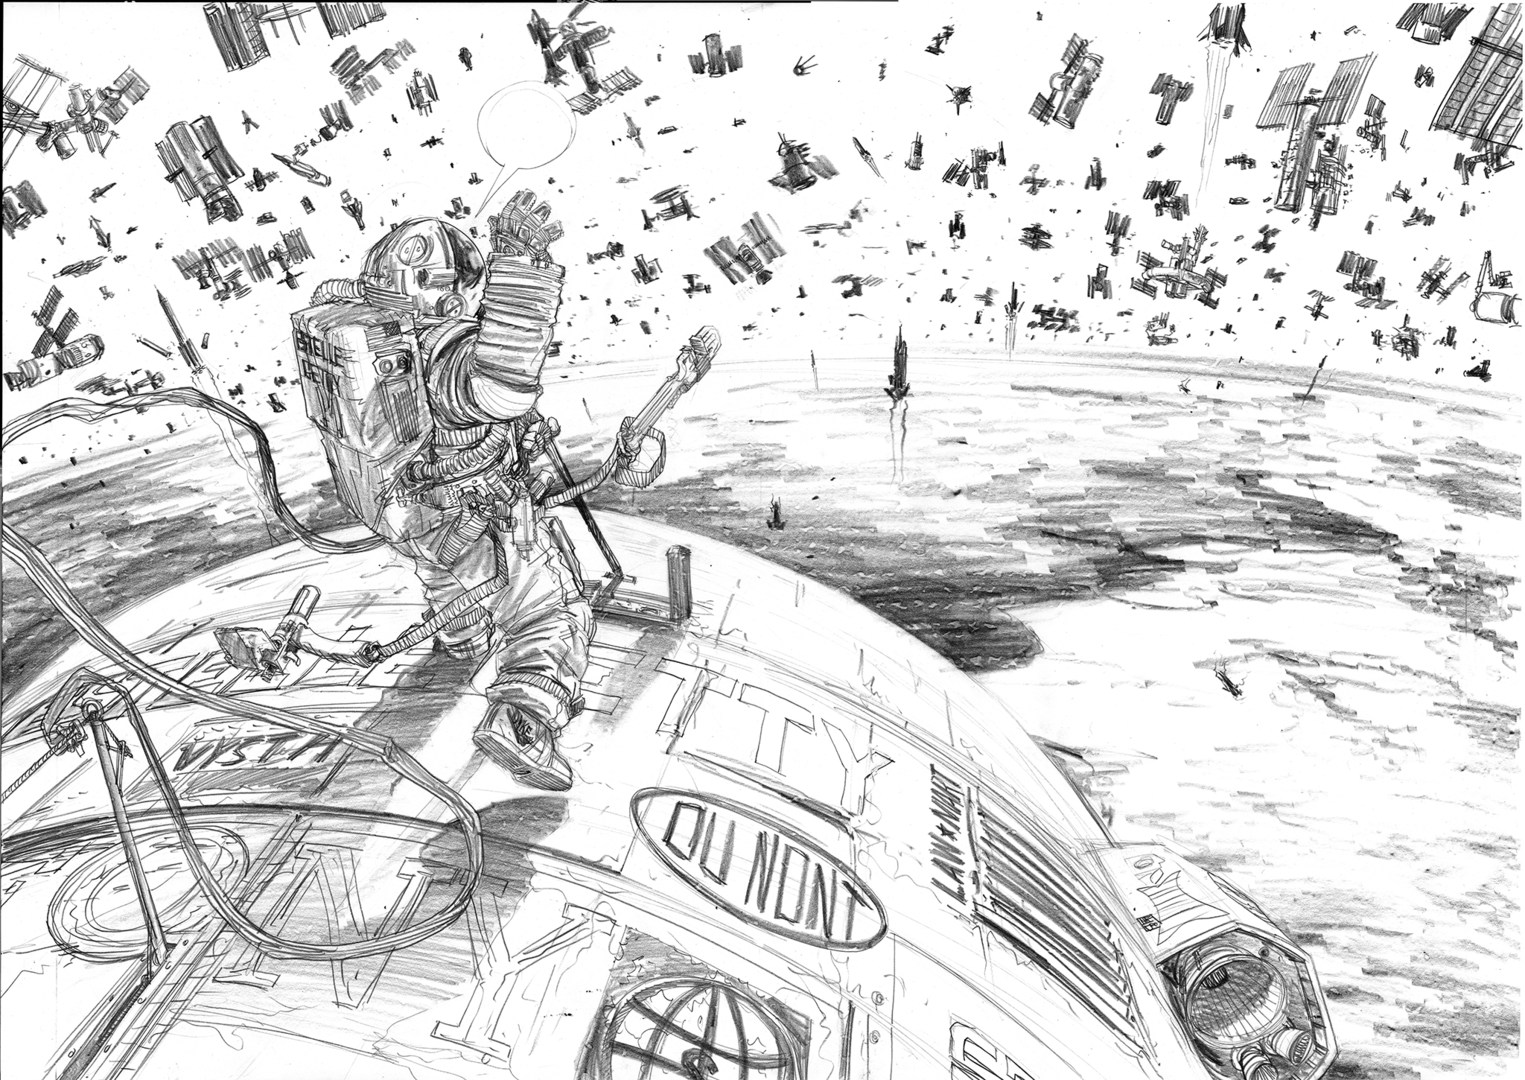 A gestural pencil drawing on white paper shows an astronaut tethered to a spacecraft, raising their hand and gazing at a background full of satellites and debris.